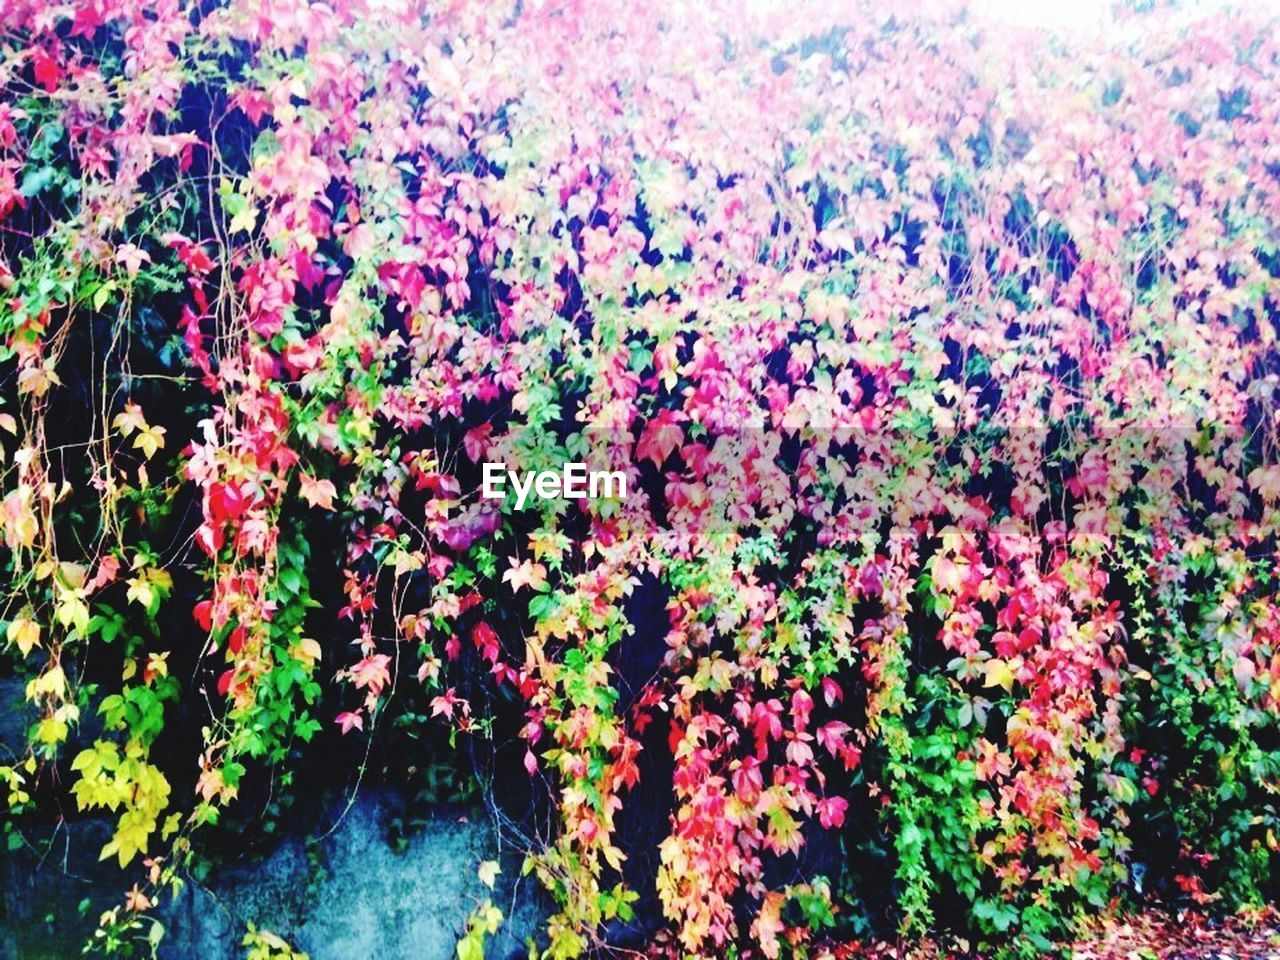 flower, growth, plant, nature, freshness, beauty in nature, outdoors, multi colored, day, no people, blooming, fragility